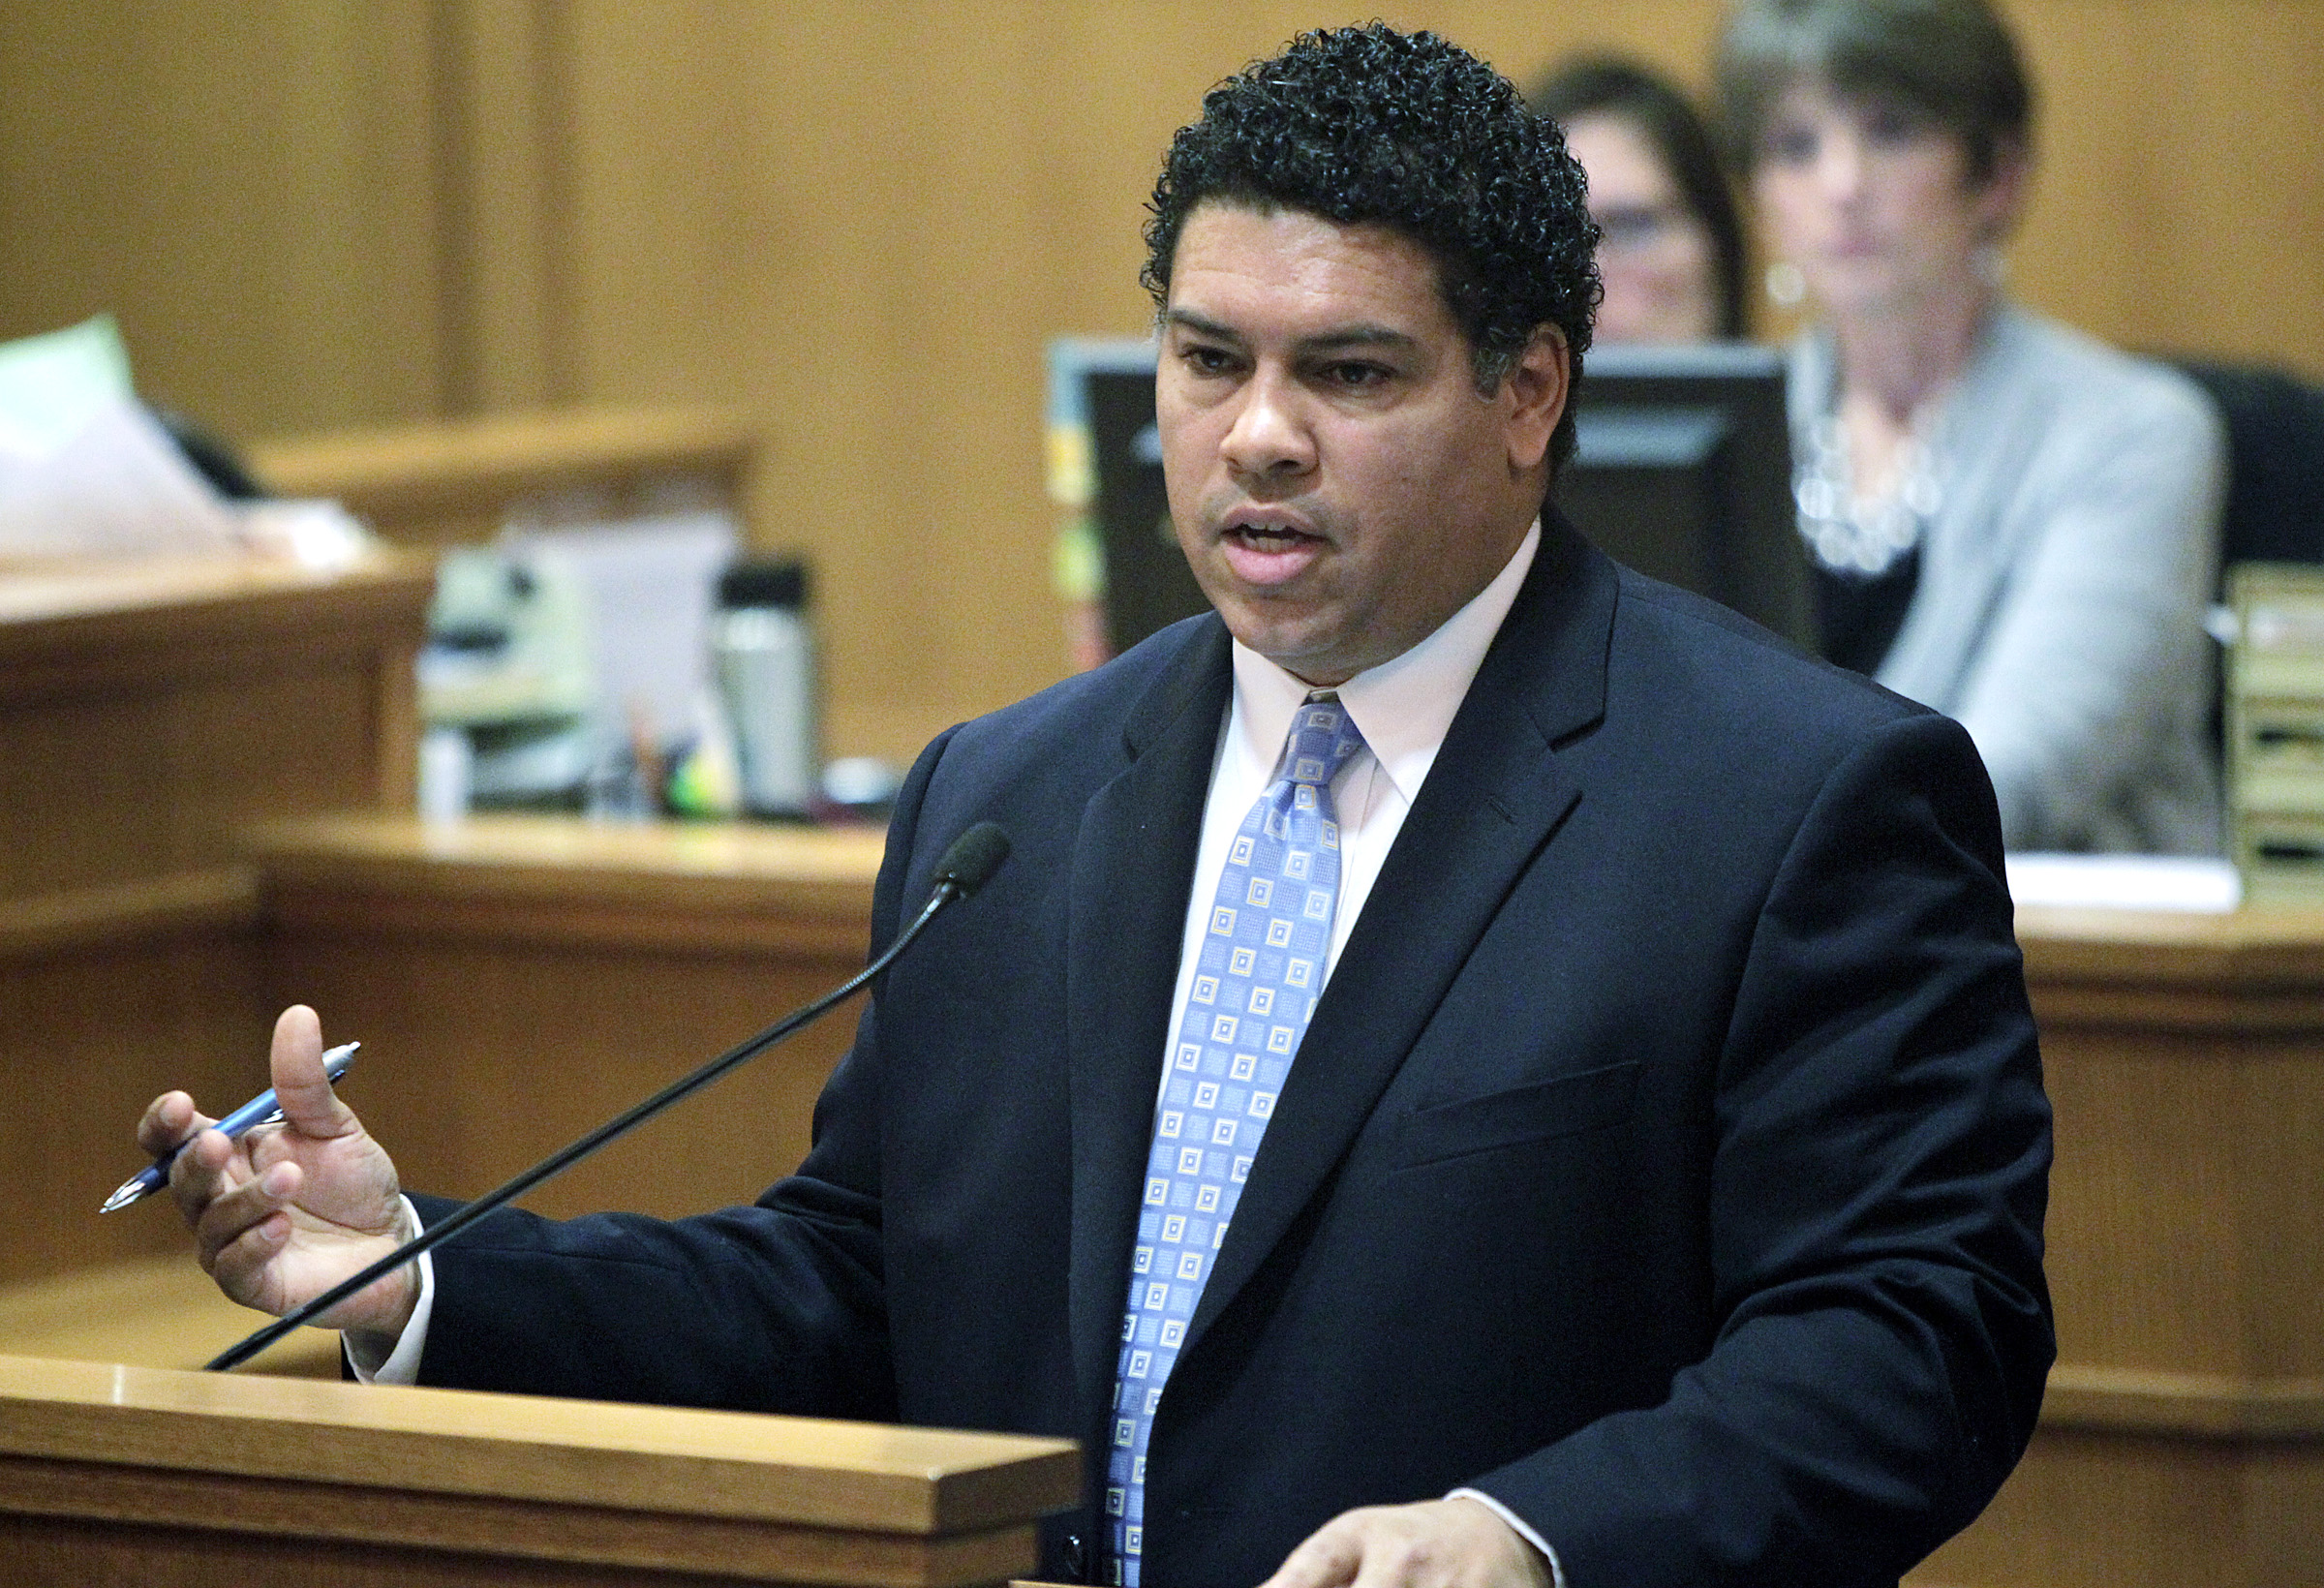 In this Feb. 26, 2013 file photo, Dane County, Wisconsin, District Attorney Ismael Ozanne speaks in a  Madison, Wis., court. Ozanne is weighing whether to file charges against Madison Officer Matt Kenny in Tony Robinson's death.